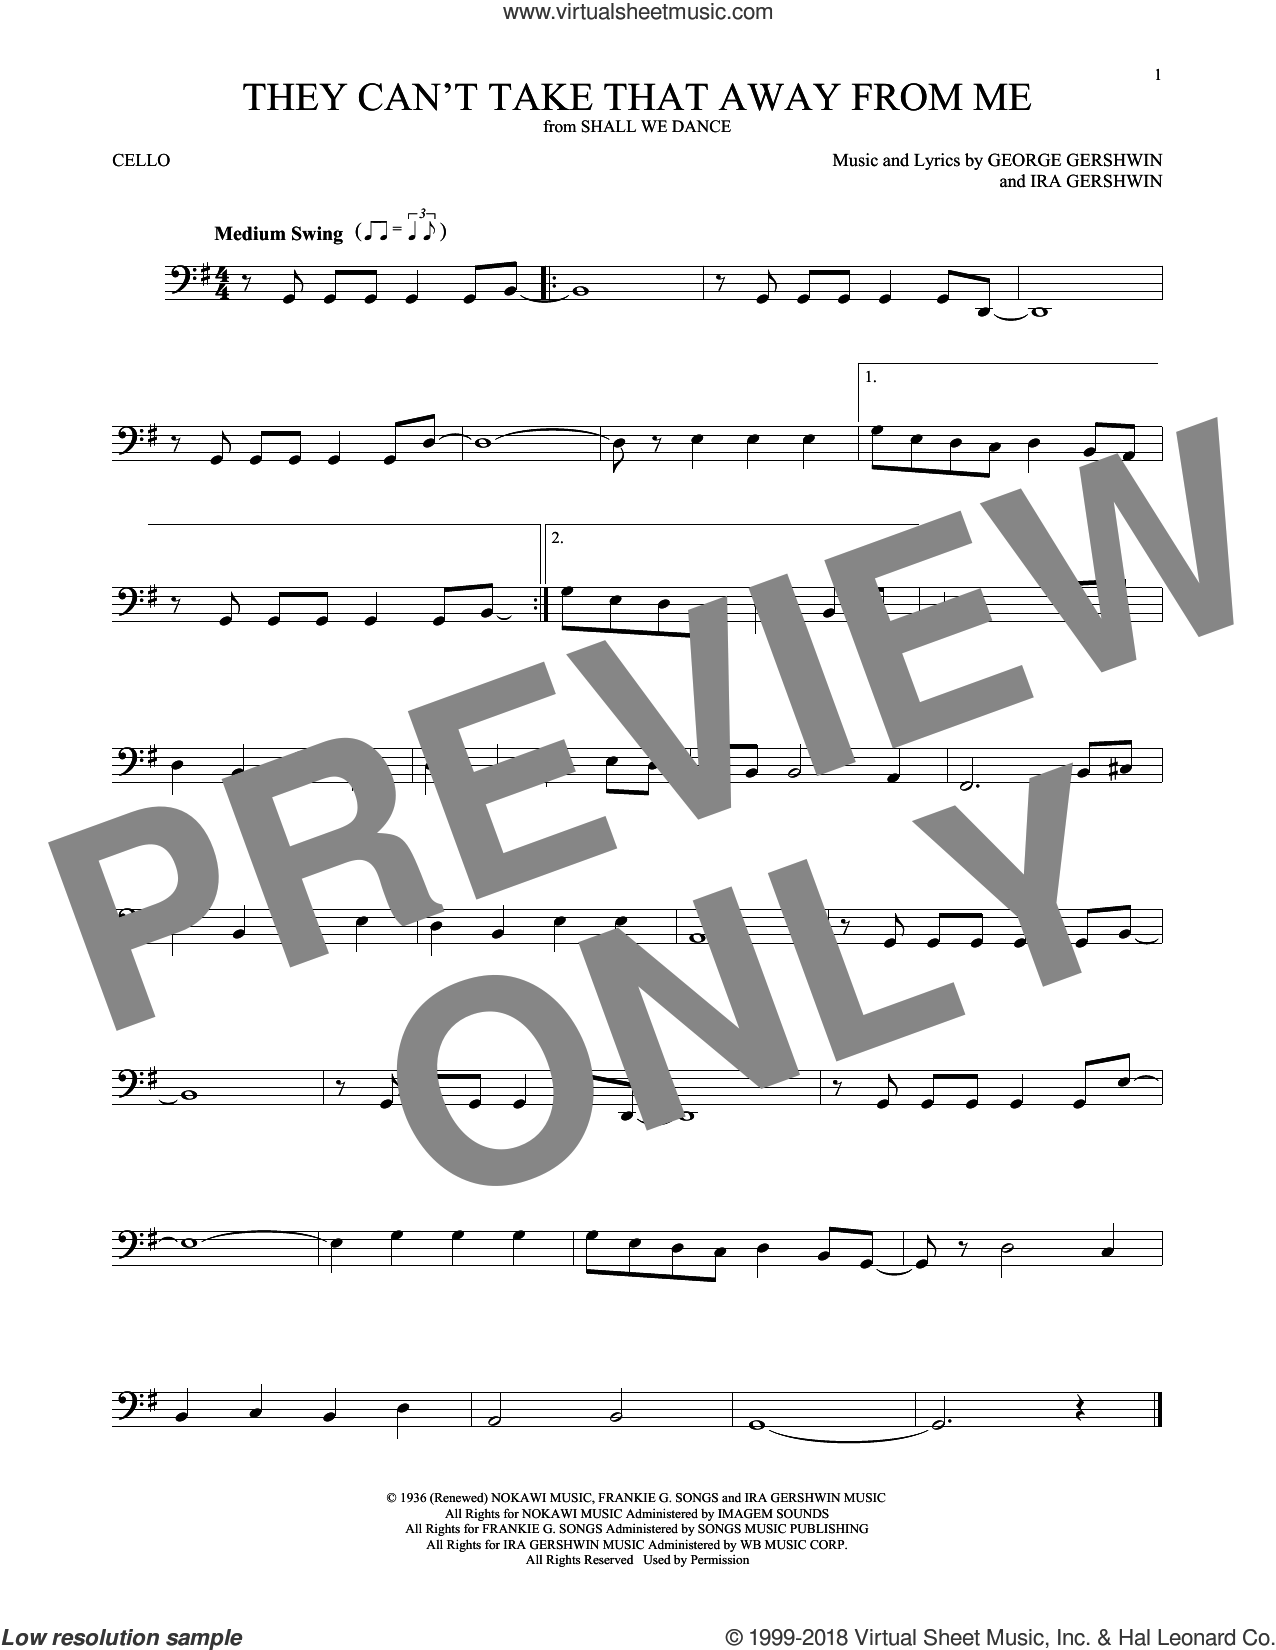 They Can't Take That Away From Me sheet music for cello solo by Frank Sinatra, George Gershwin and Ira Gershwin, intermediate skill level